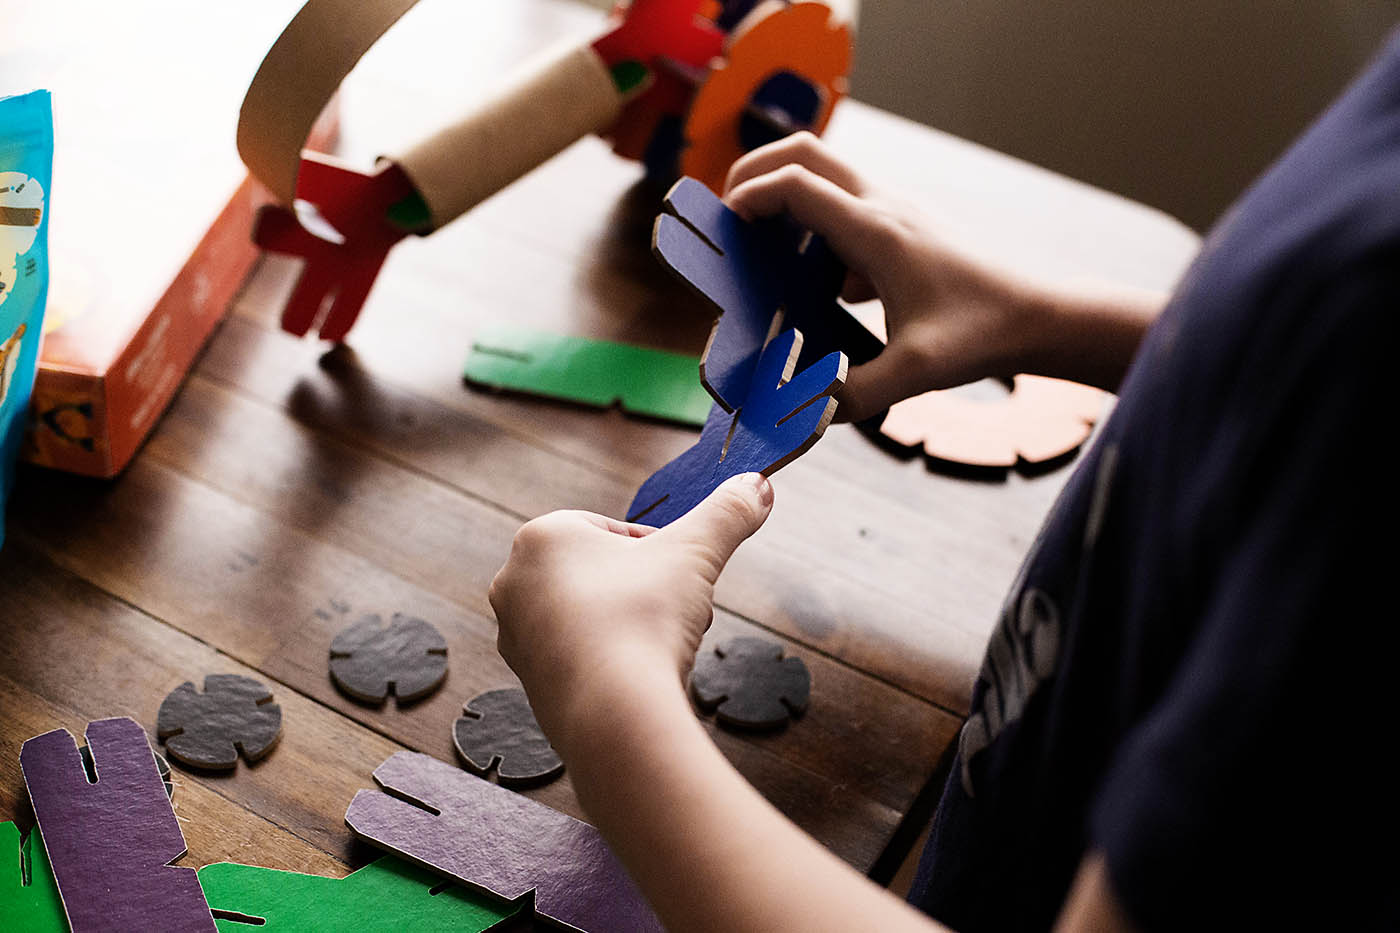 Yoxo - recycled building toy